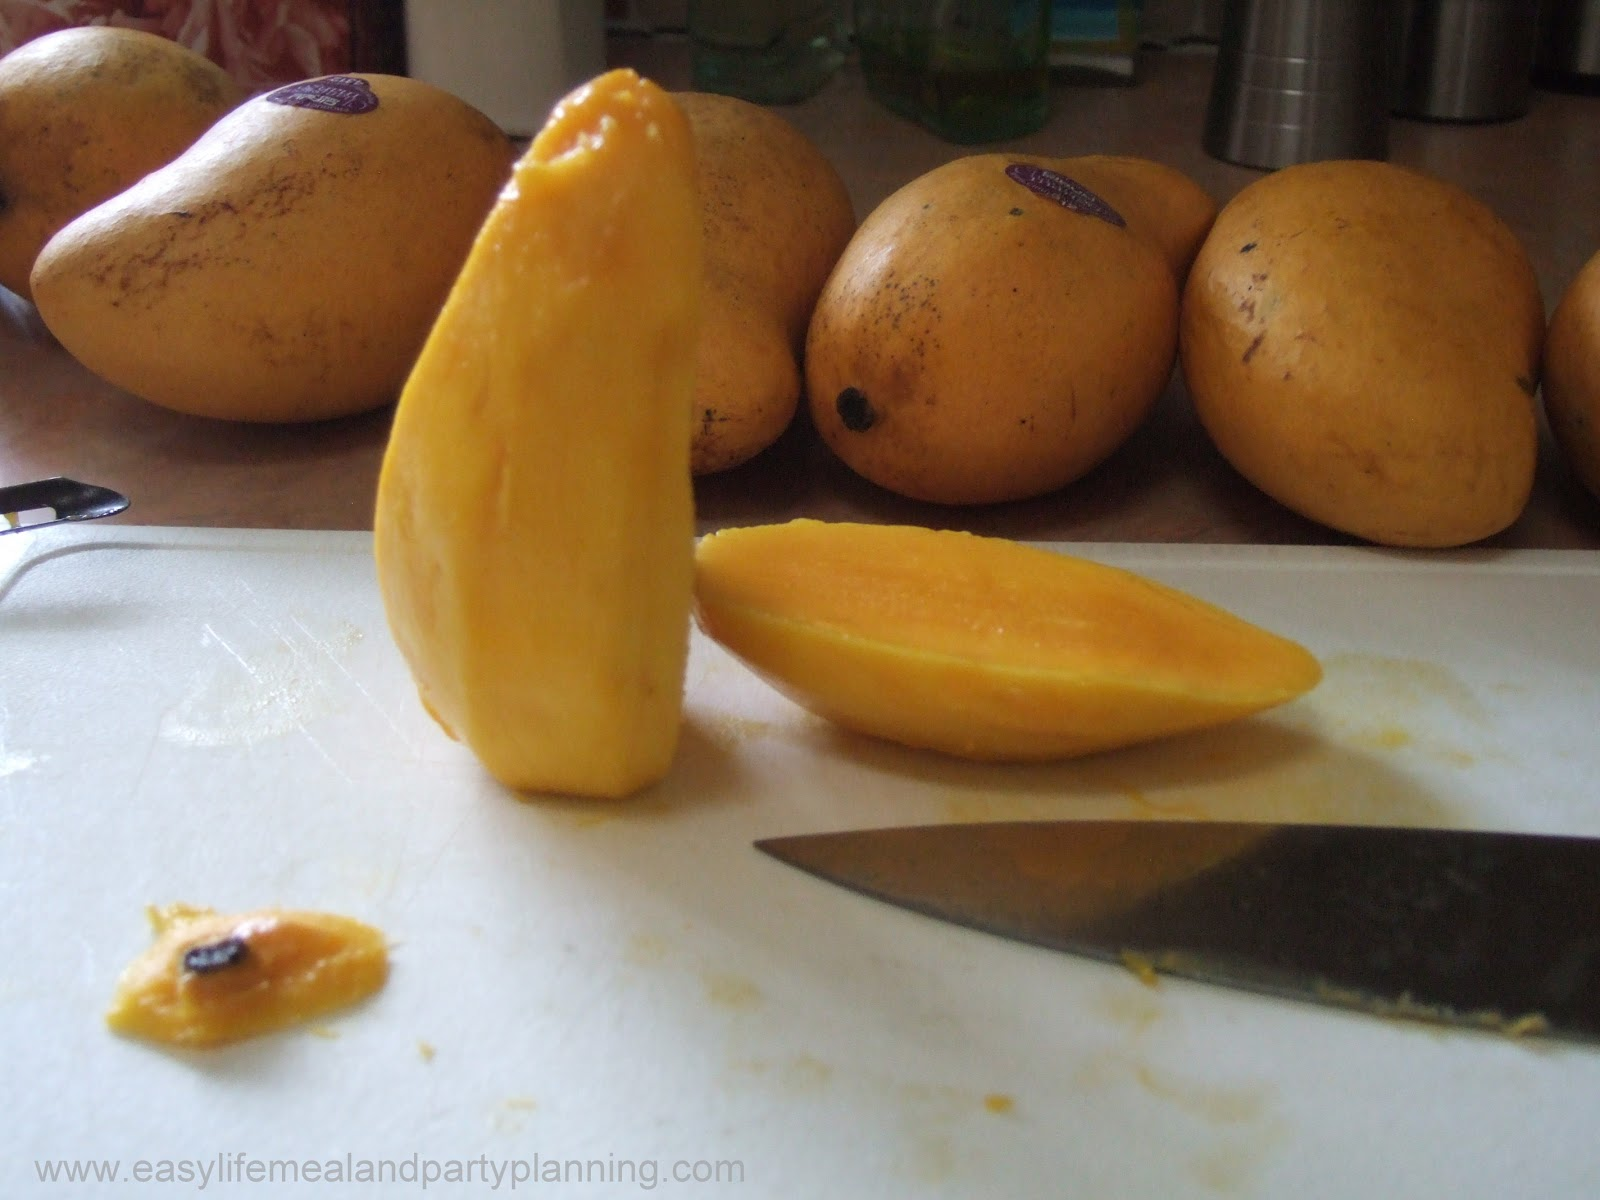 Easy Life Meal And Party Planning: How To Cut And Freeze A Mango